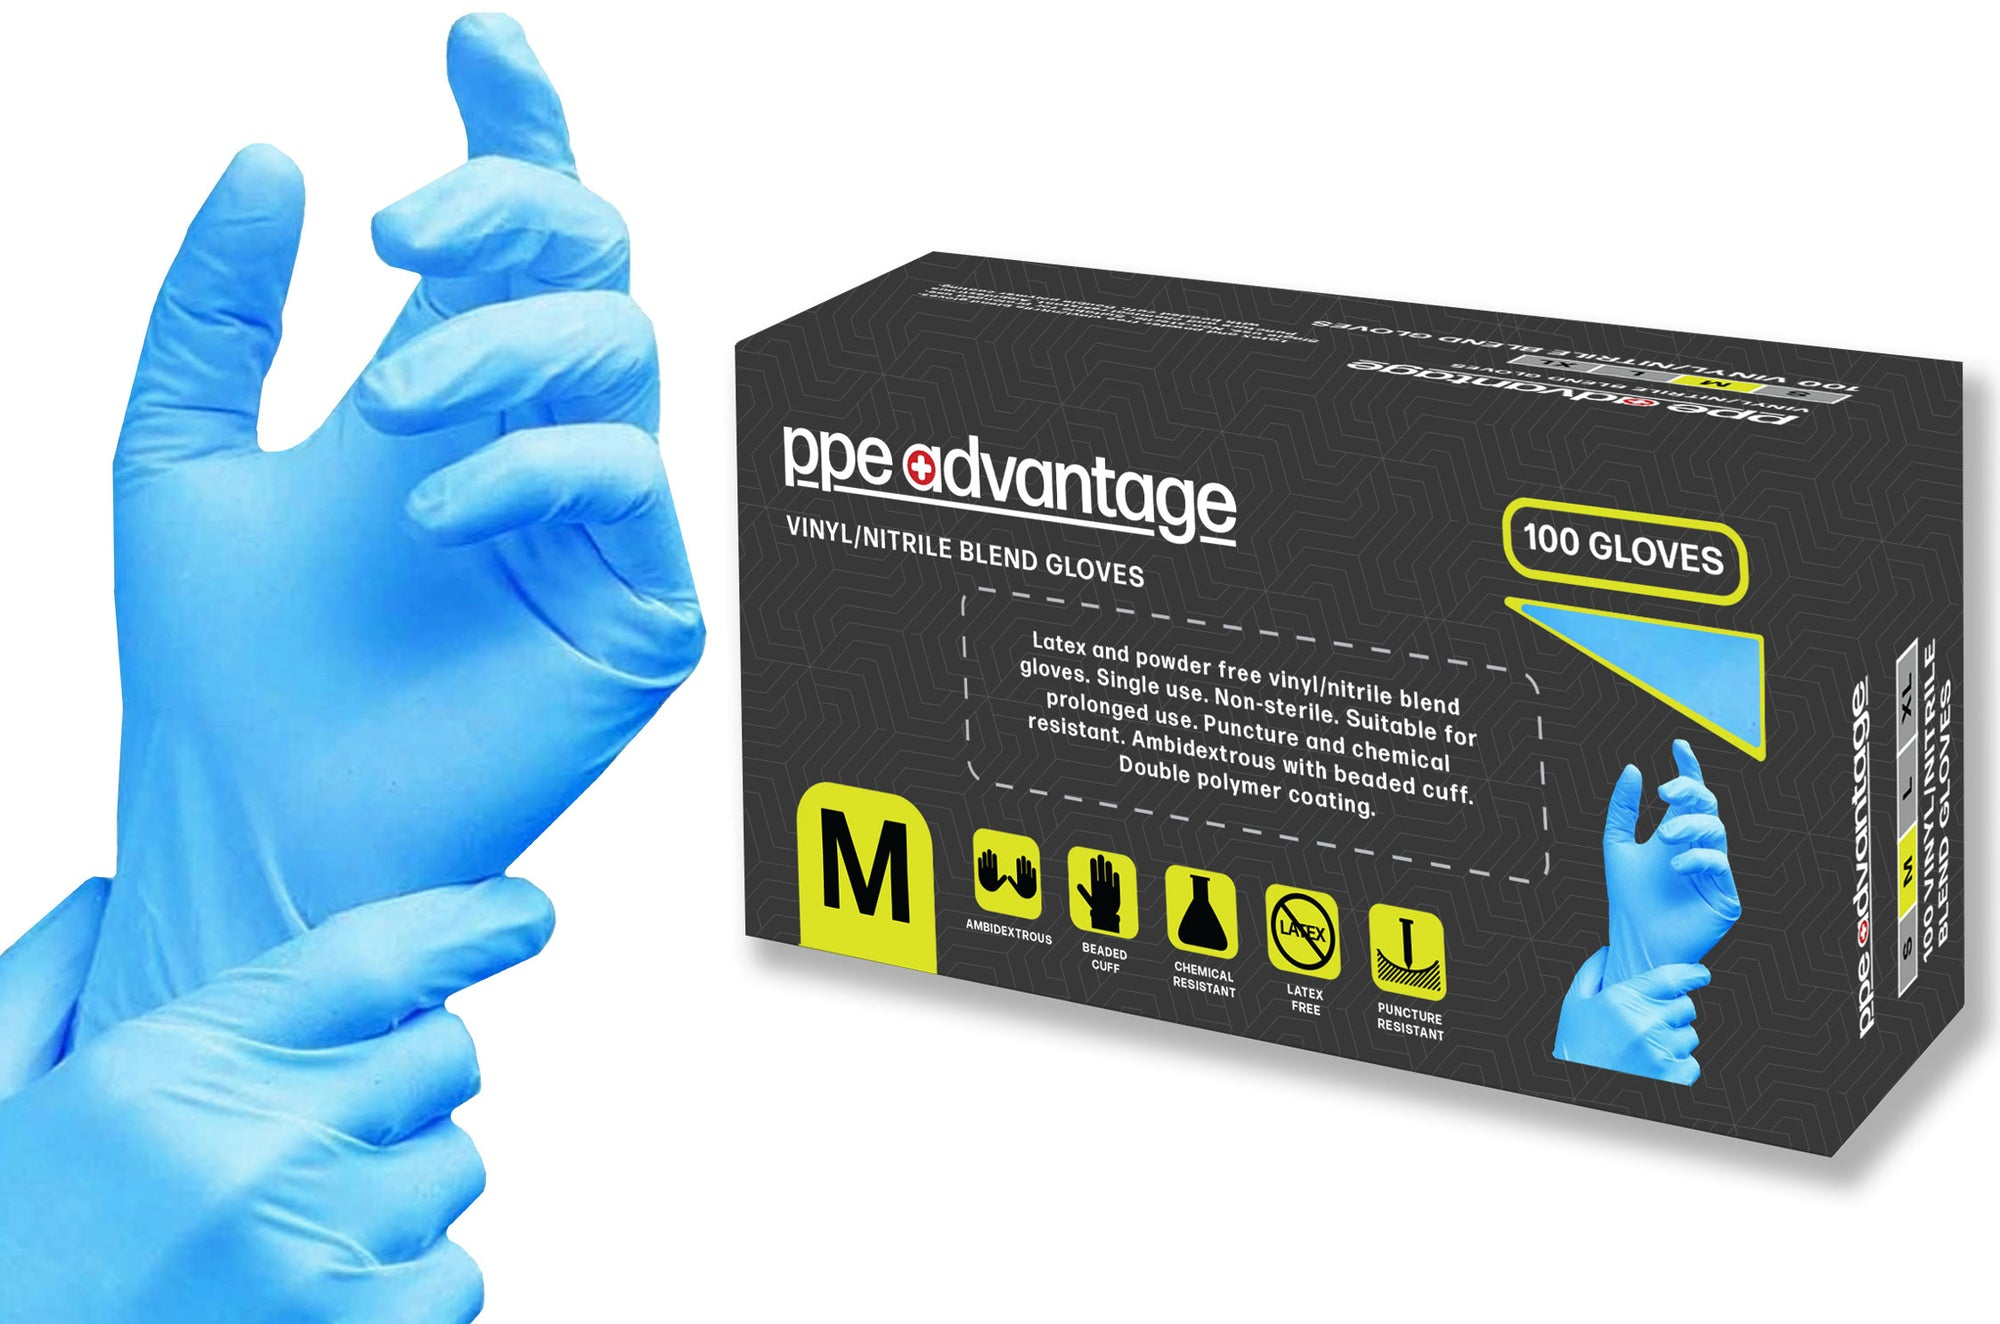 3163 PPE Advantage Vinyl / Nitrile Blend Gloves - Non Medical | PPE Advantate powered by dS Product Hunters